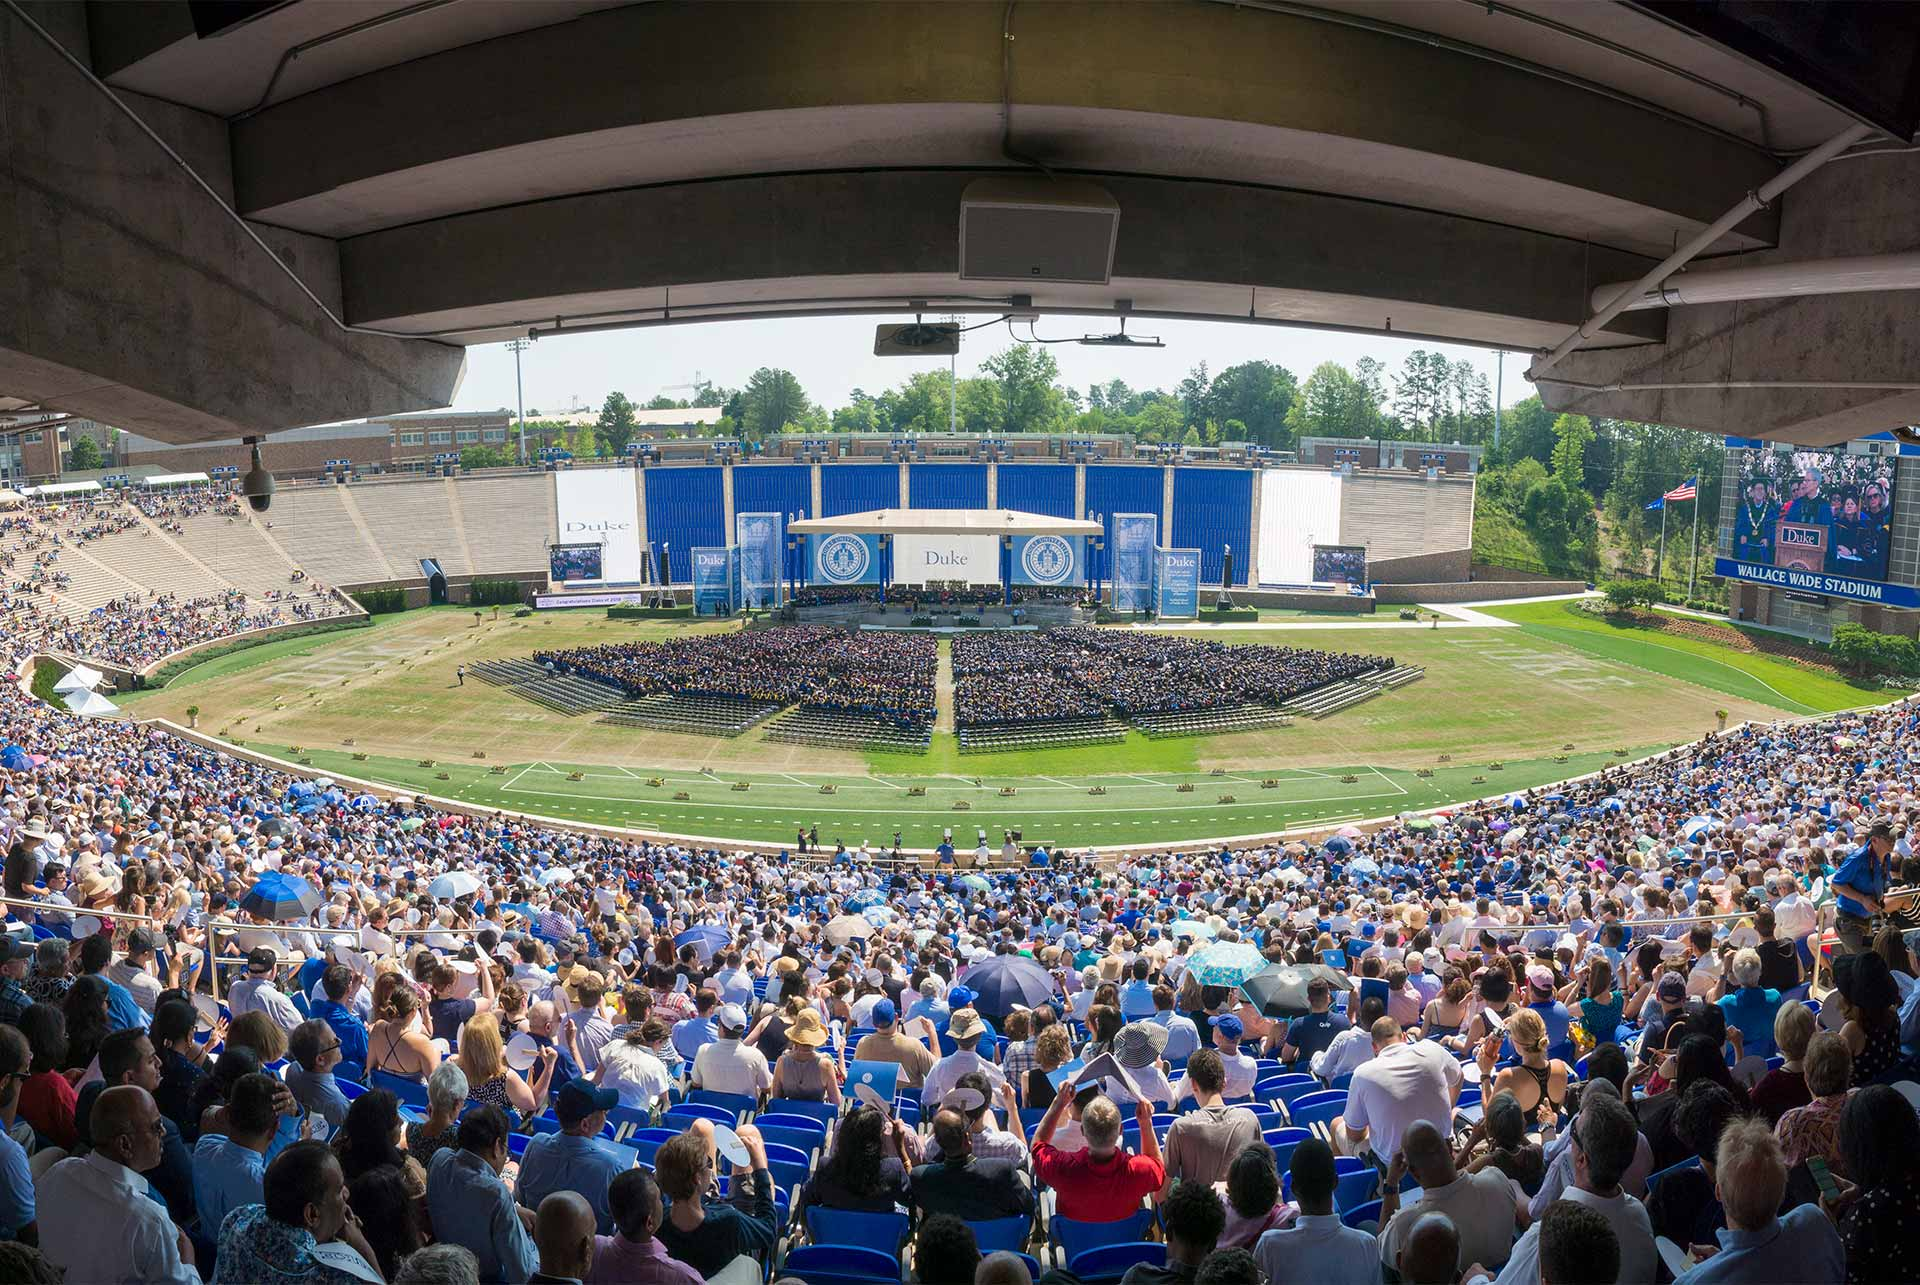 Panoramic photo of the stage and crowd at 2018 Duke University 166th Commencement, Sunday May 13th, 9am at Brooks Field at Wallace Wade Stadium.